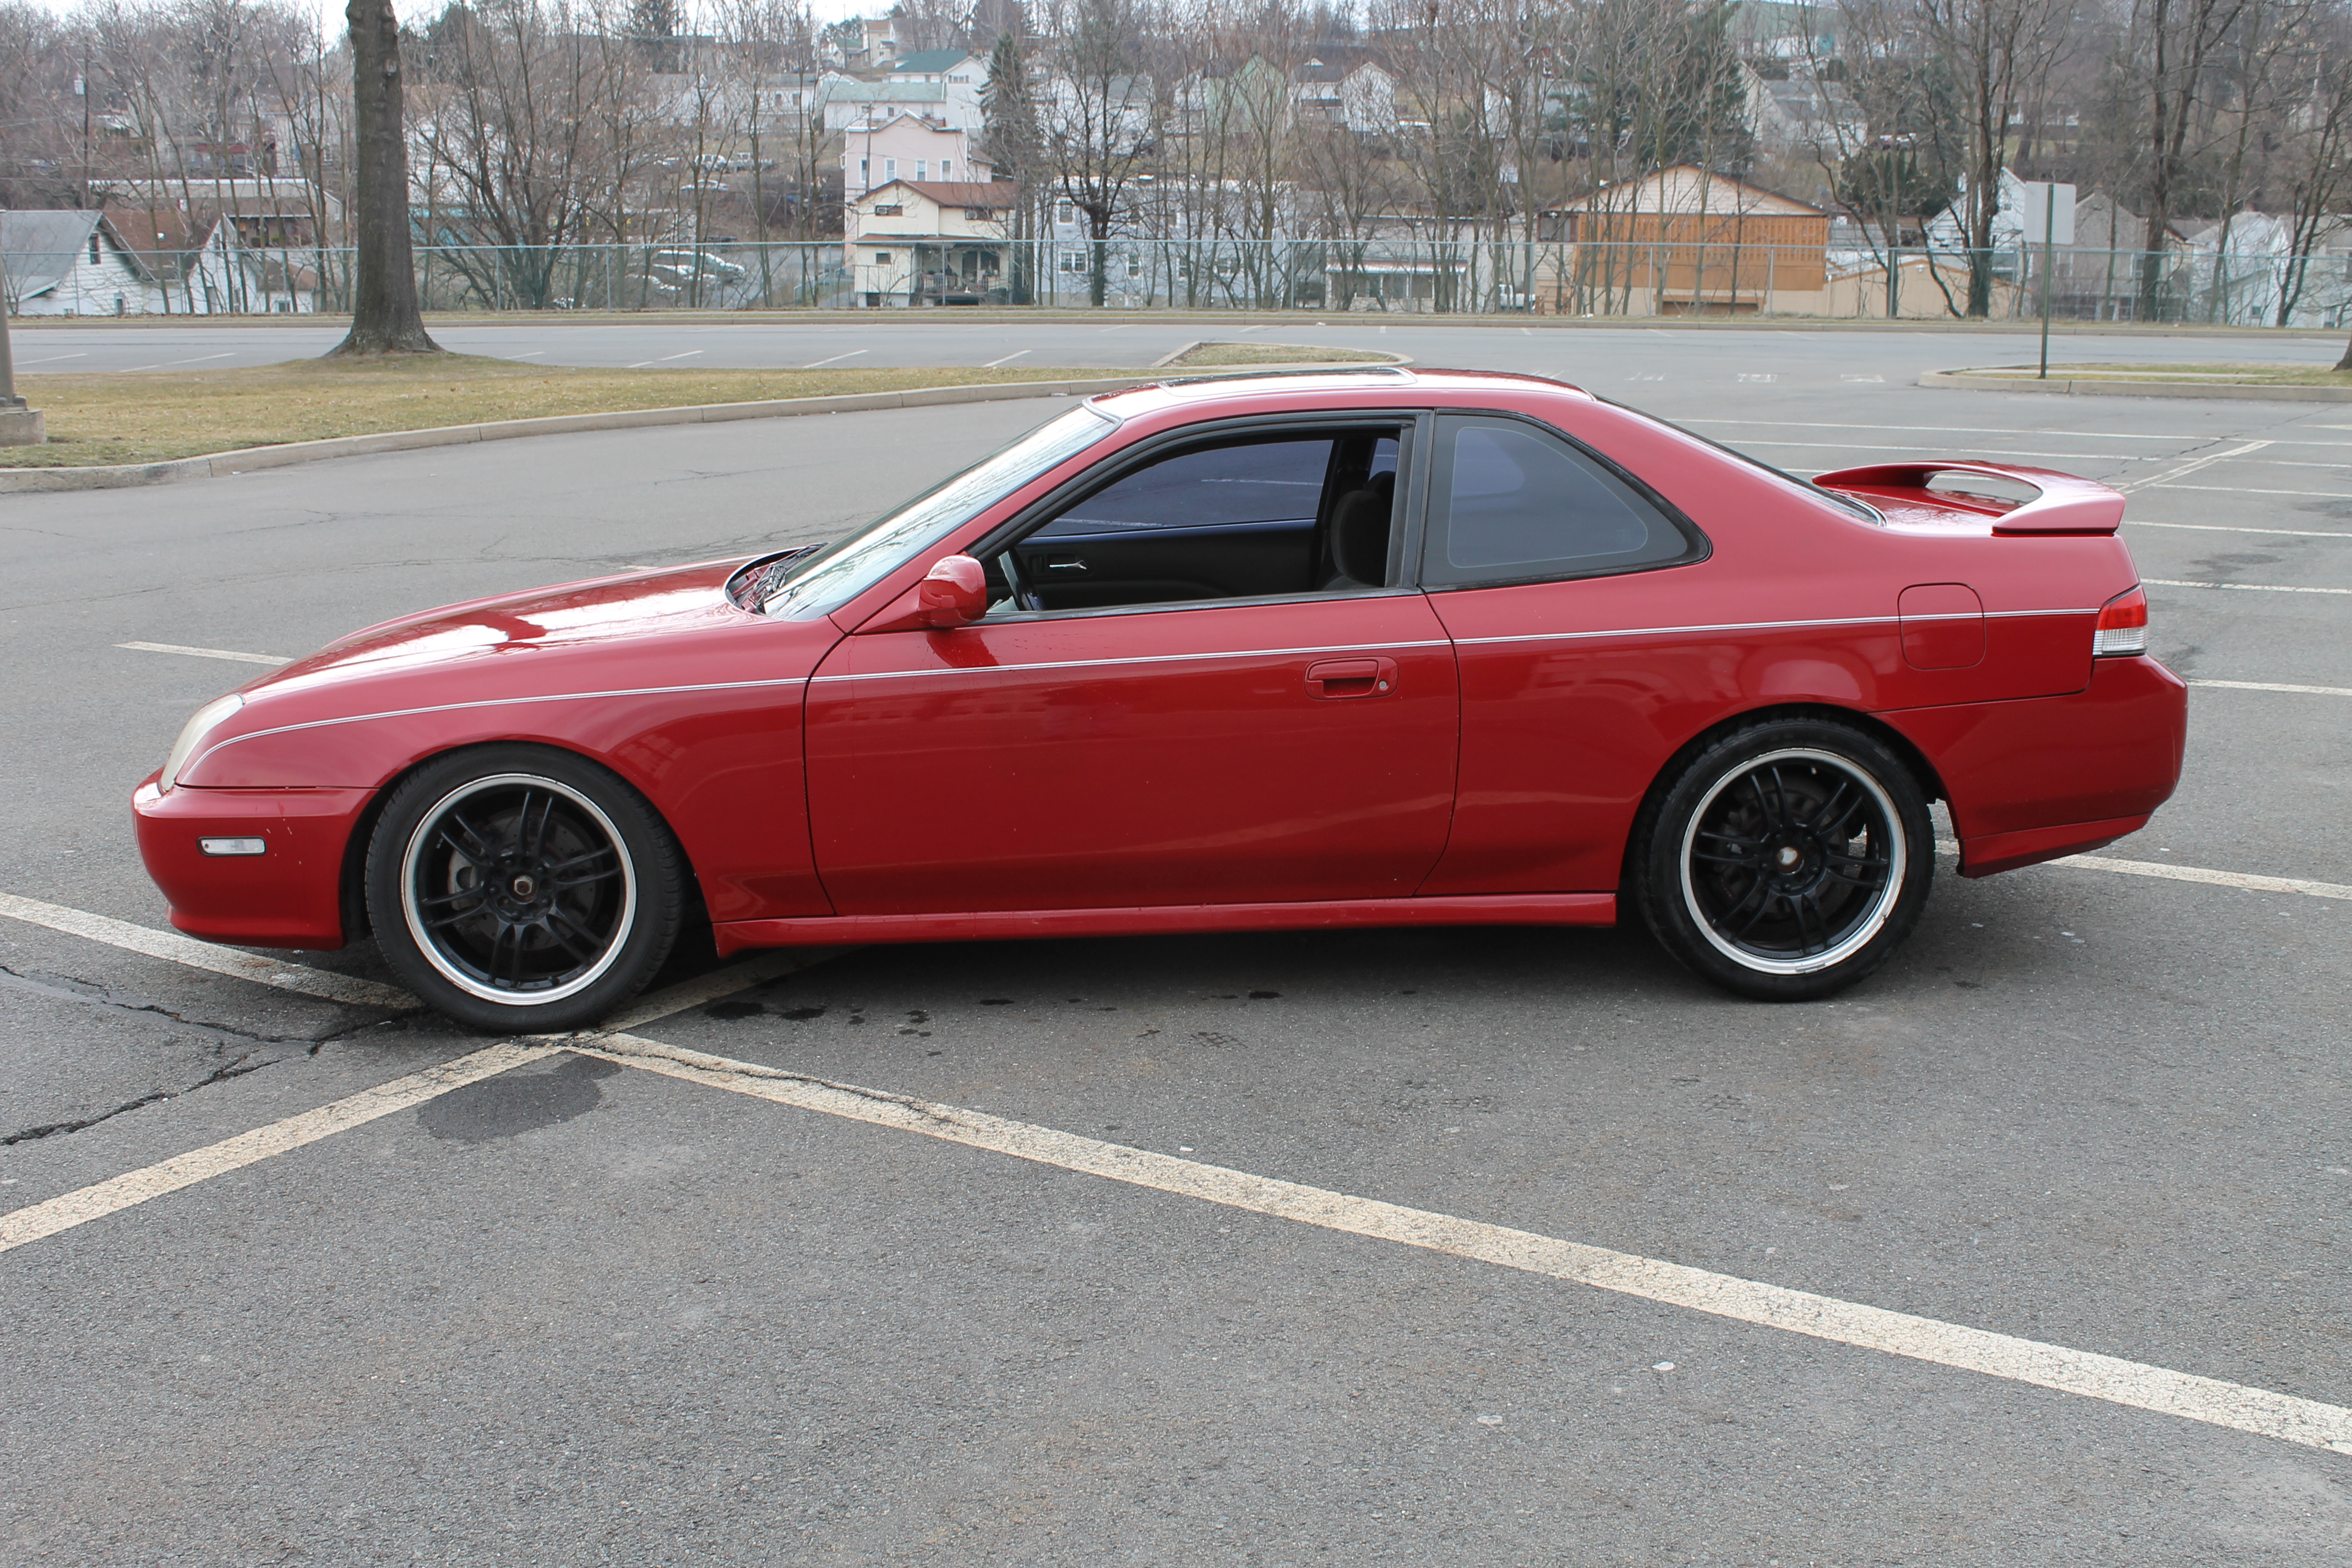 2000 Honda Prelude – 125k Miles – $4,550 | RaceLabz Cars For Sale – Lipperini Sales